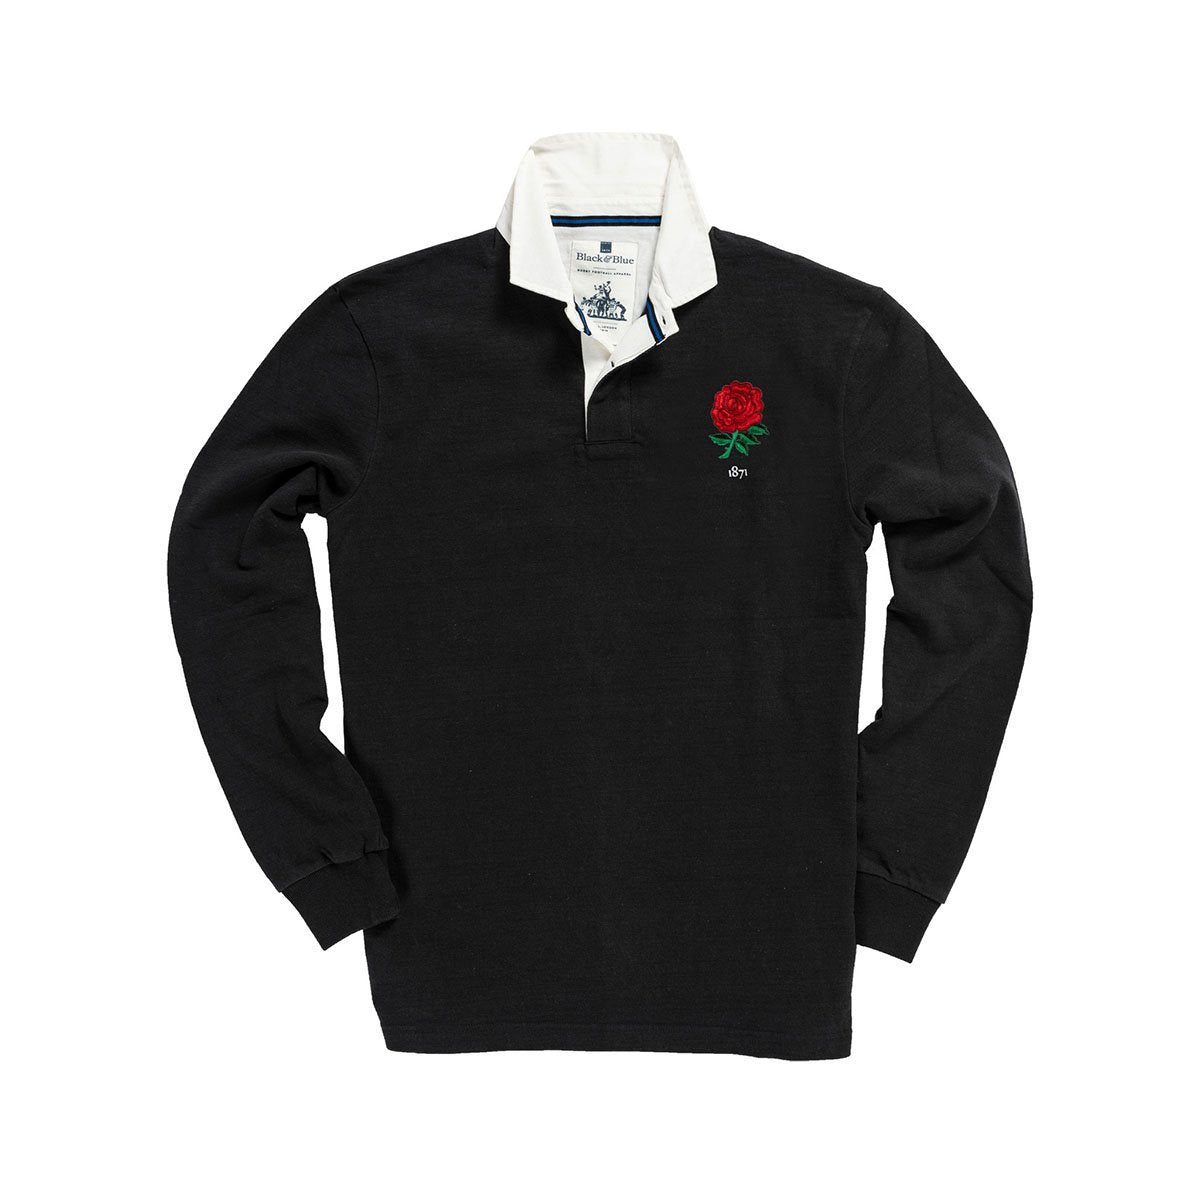 1IN/ENBXS, Black & Blue 1871, England 1871 Special Edition Rugby Shirt, Black, Vintage, Classic Rugby Shirt